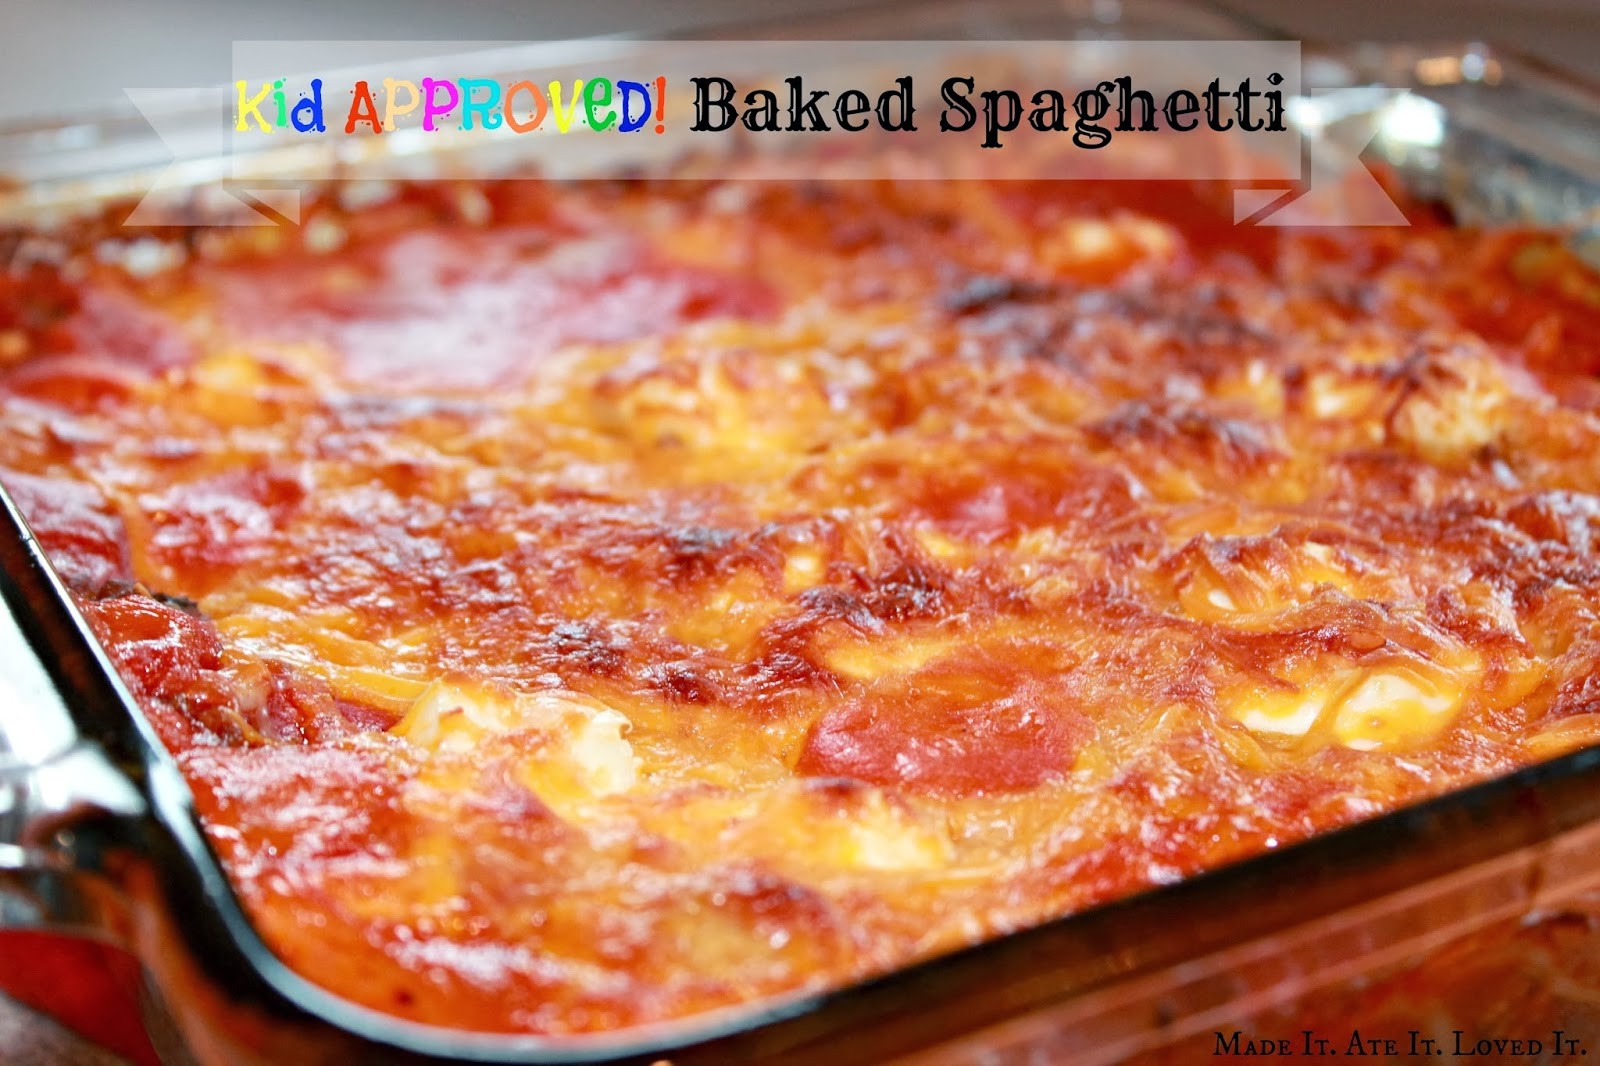 Made It. Ate It. Loved It.: Kid Approved Baked Spaghetti